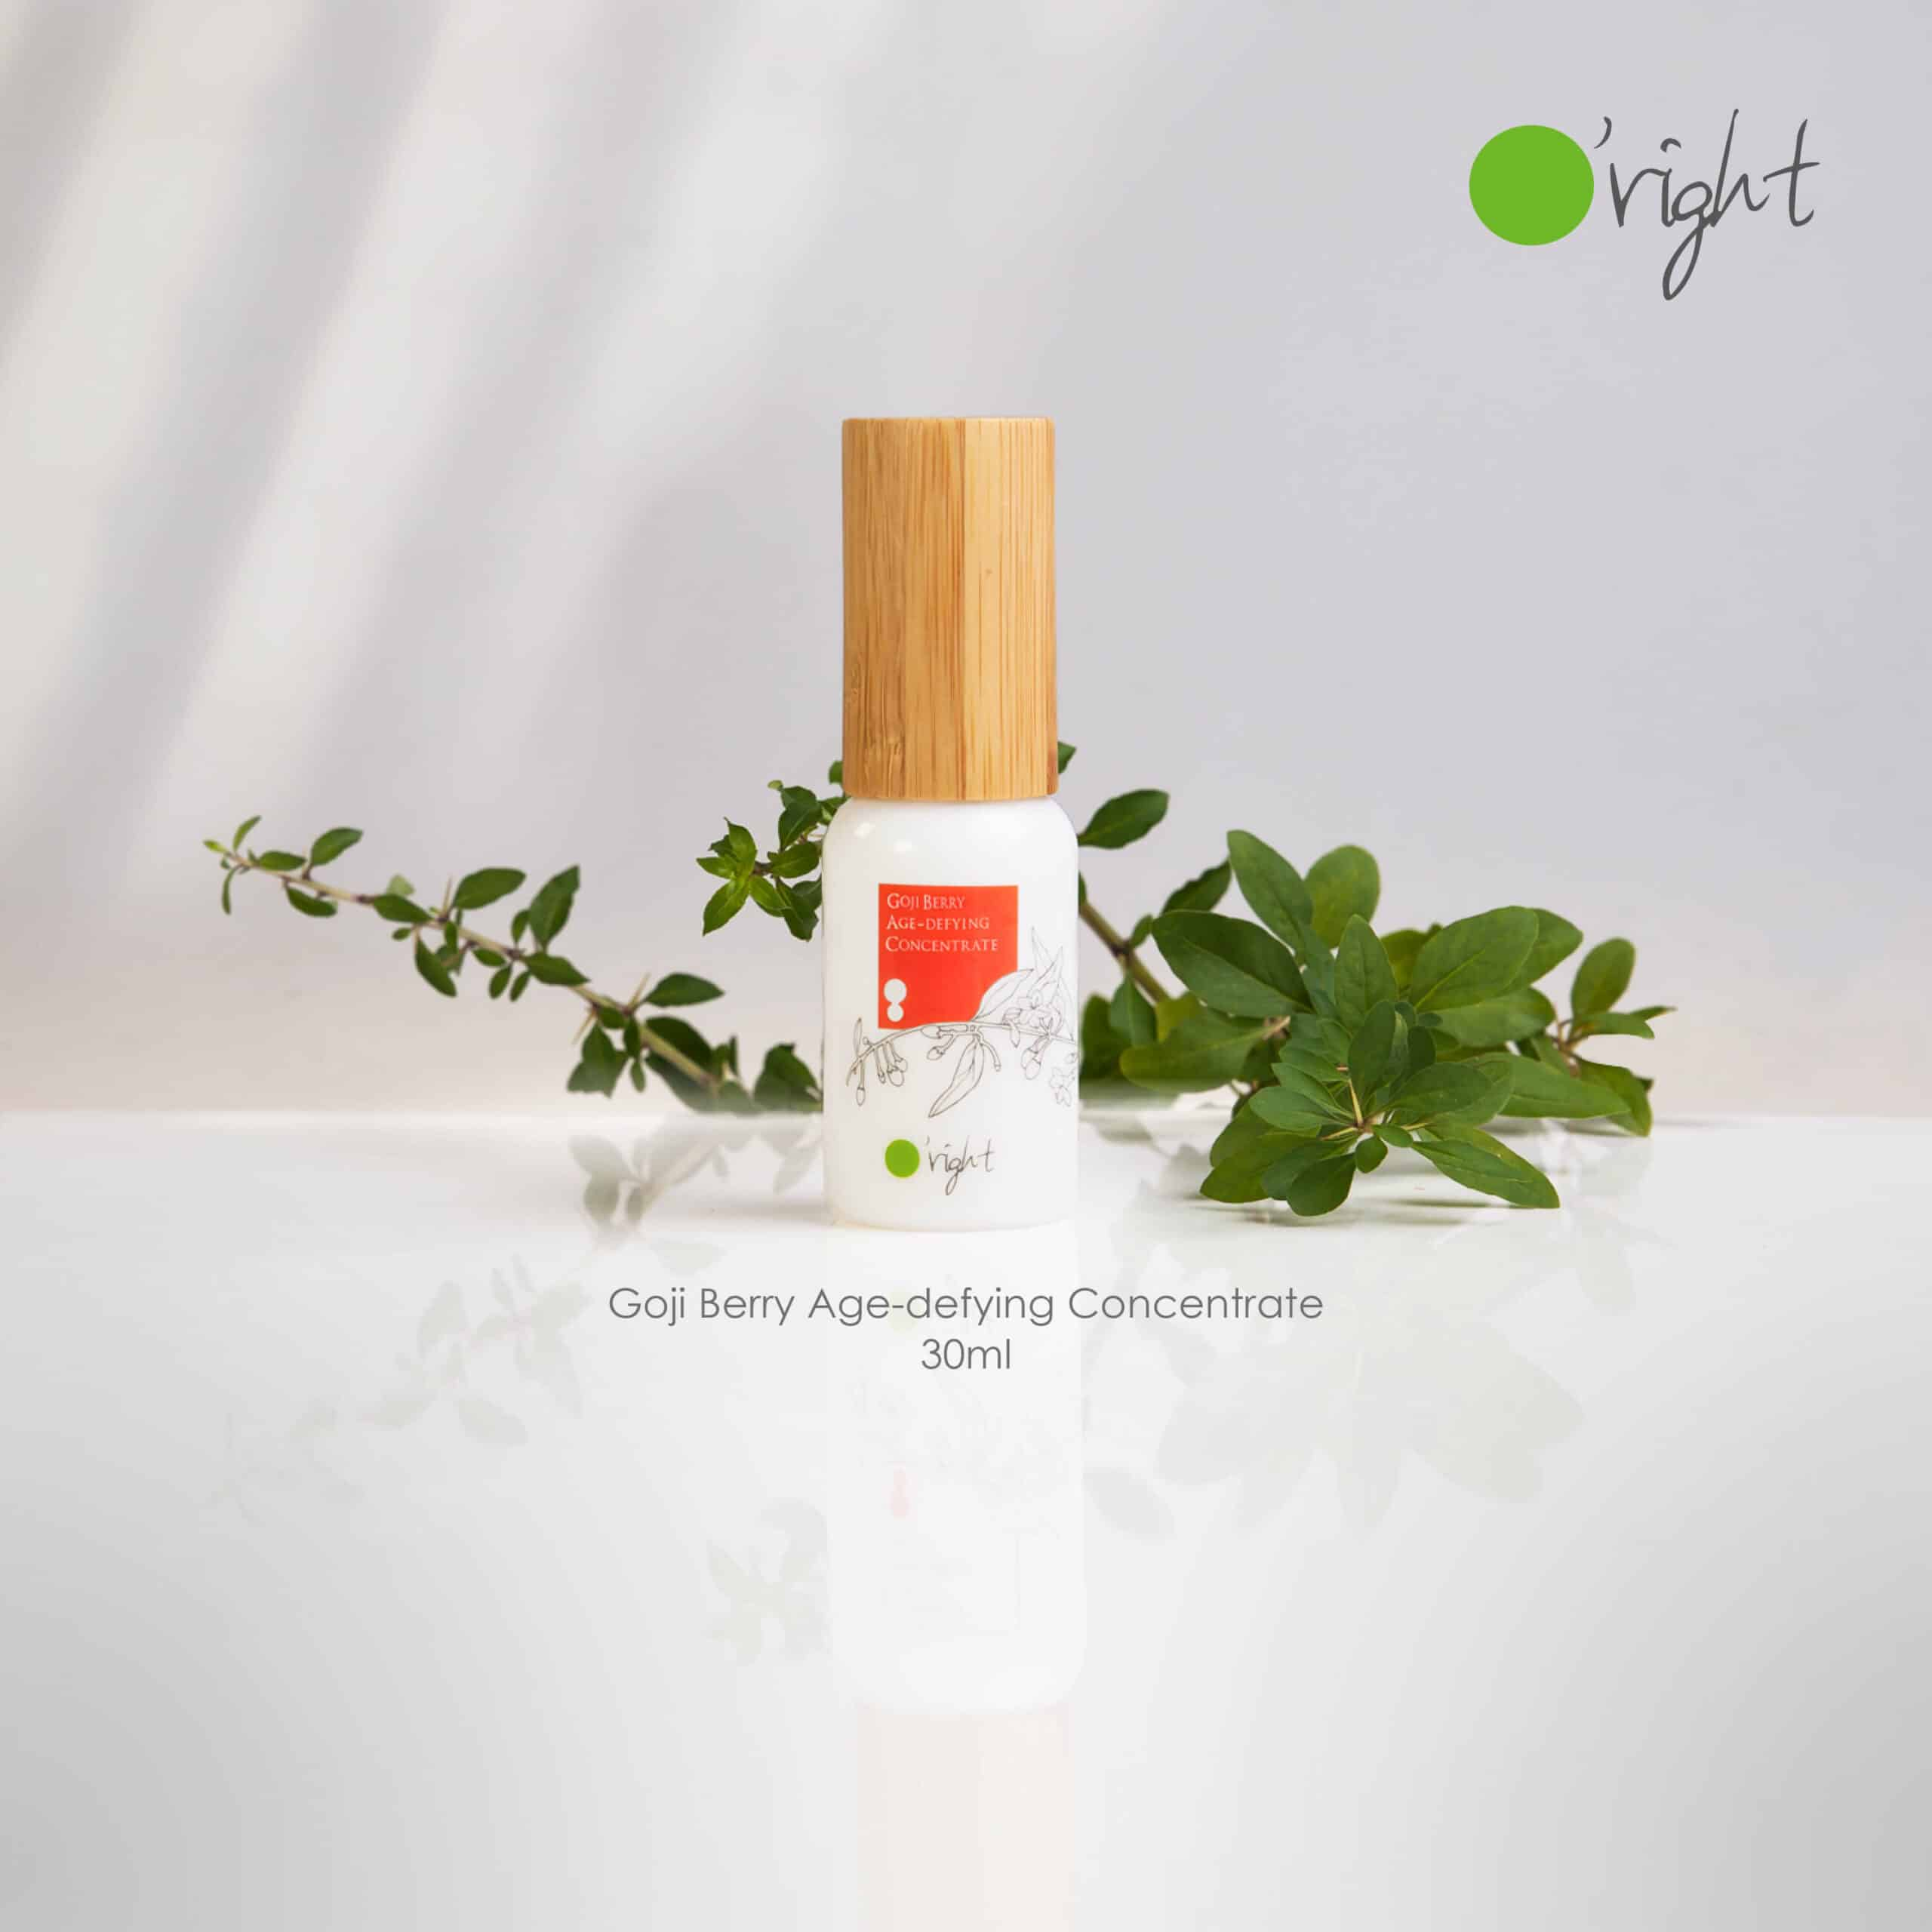 Goji Berry Age-defying Concentrate 01